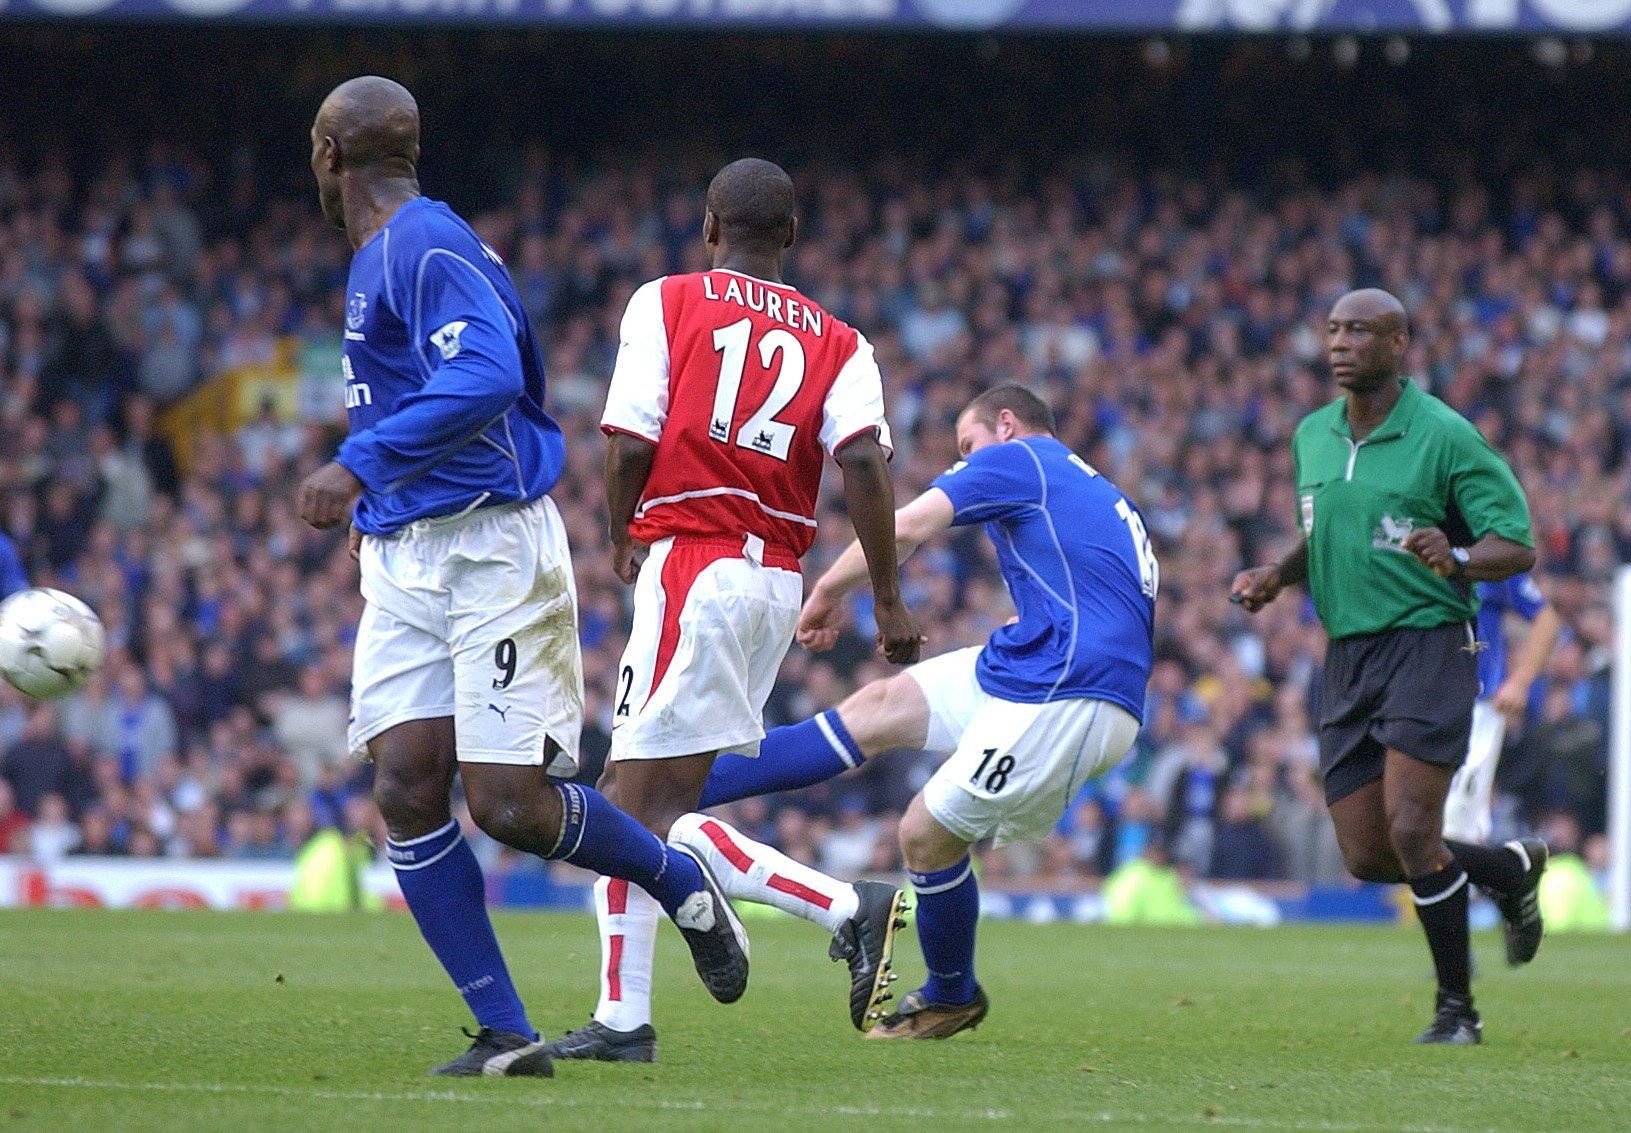 Rooney curls home one of the most memorable goals in Premier League history